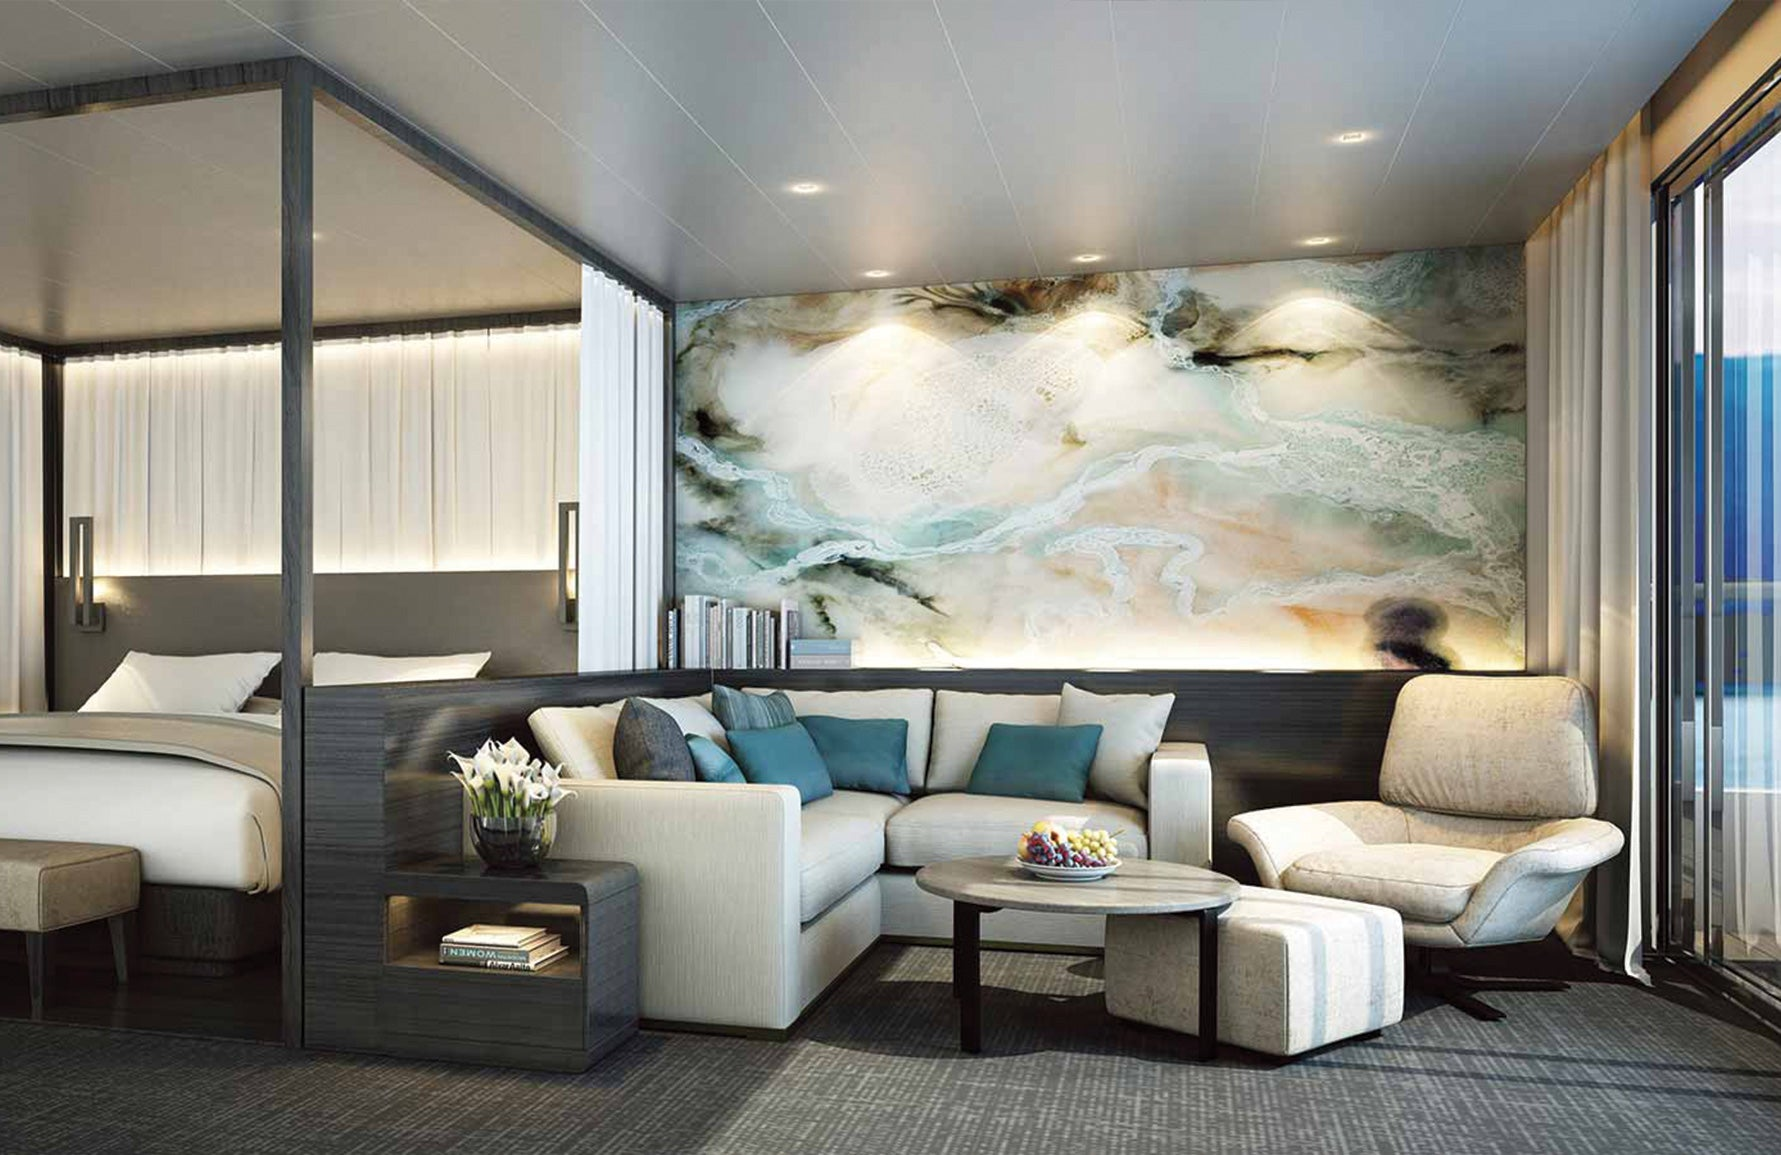 Most Luxurious Cruise Ships in the World _ Scenic Eclipse _ LuxDeco Style Guide